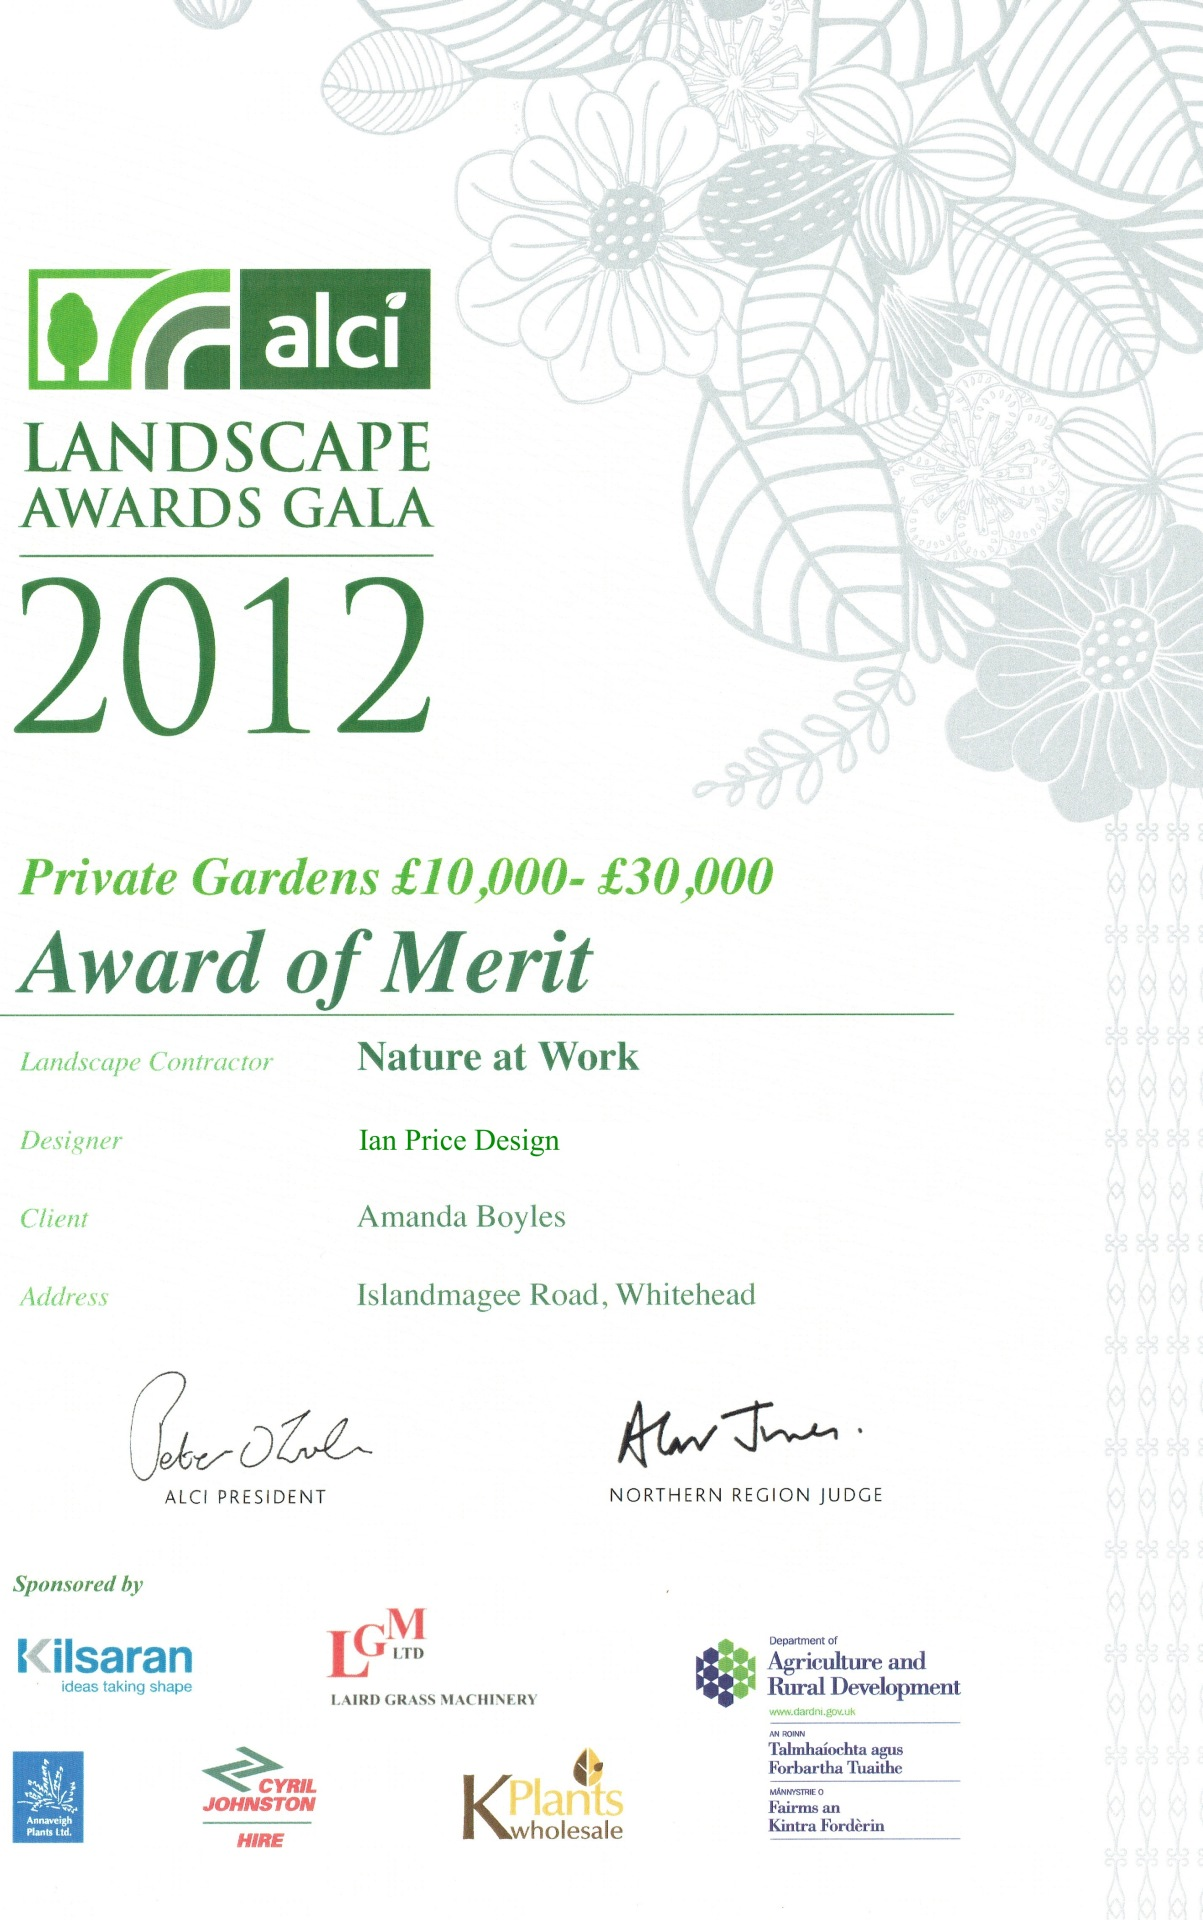 ALCI Landscape Awards 2012 Private Gardens £10,000- £30,000